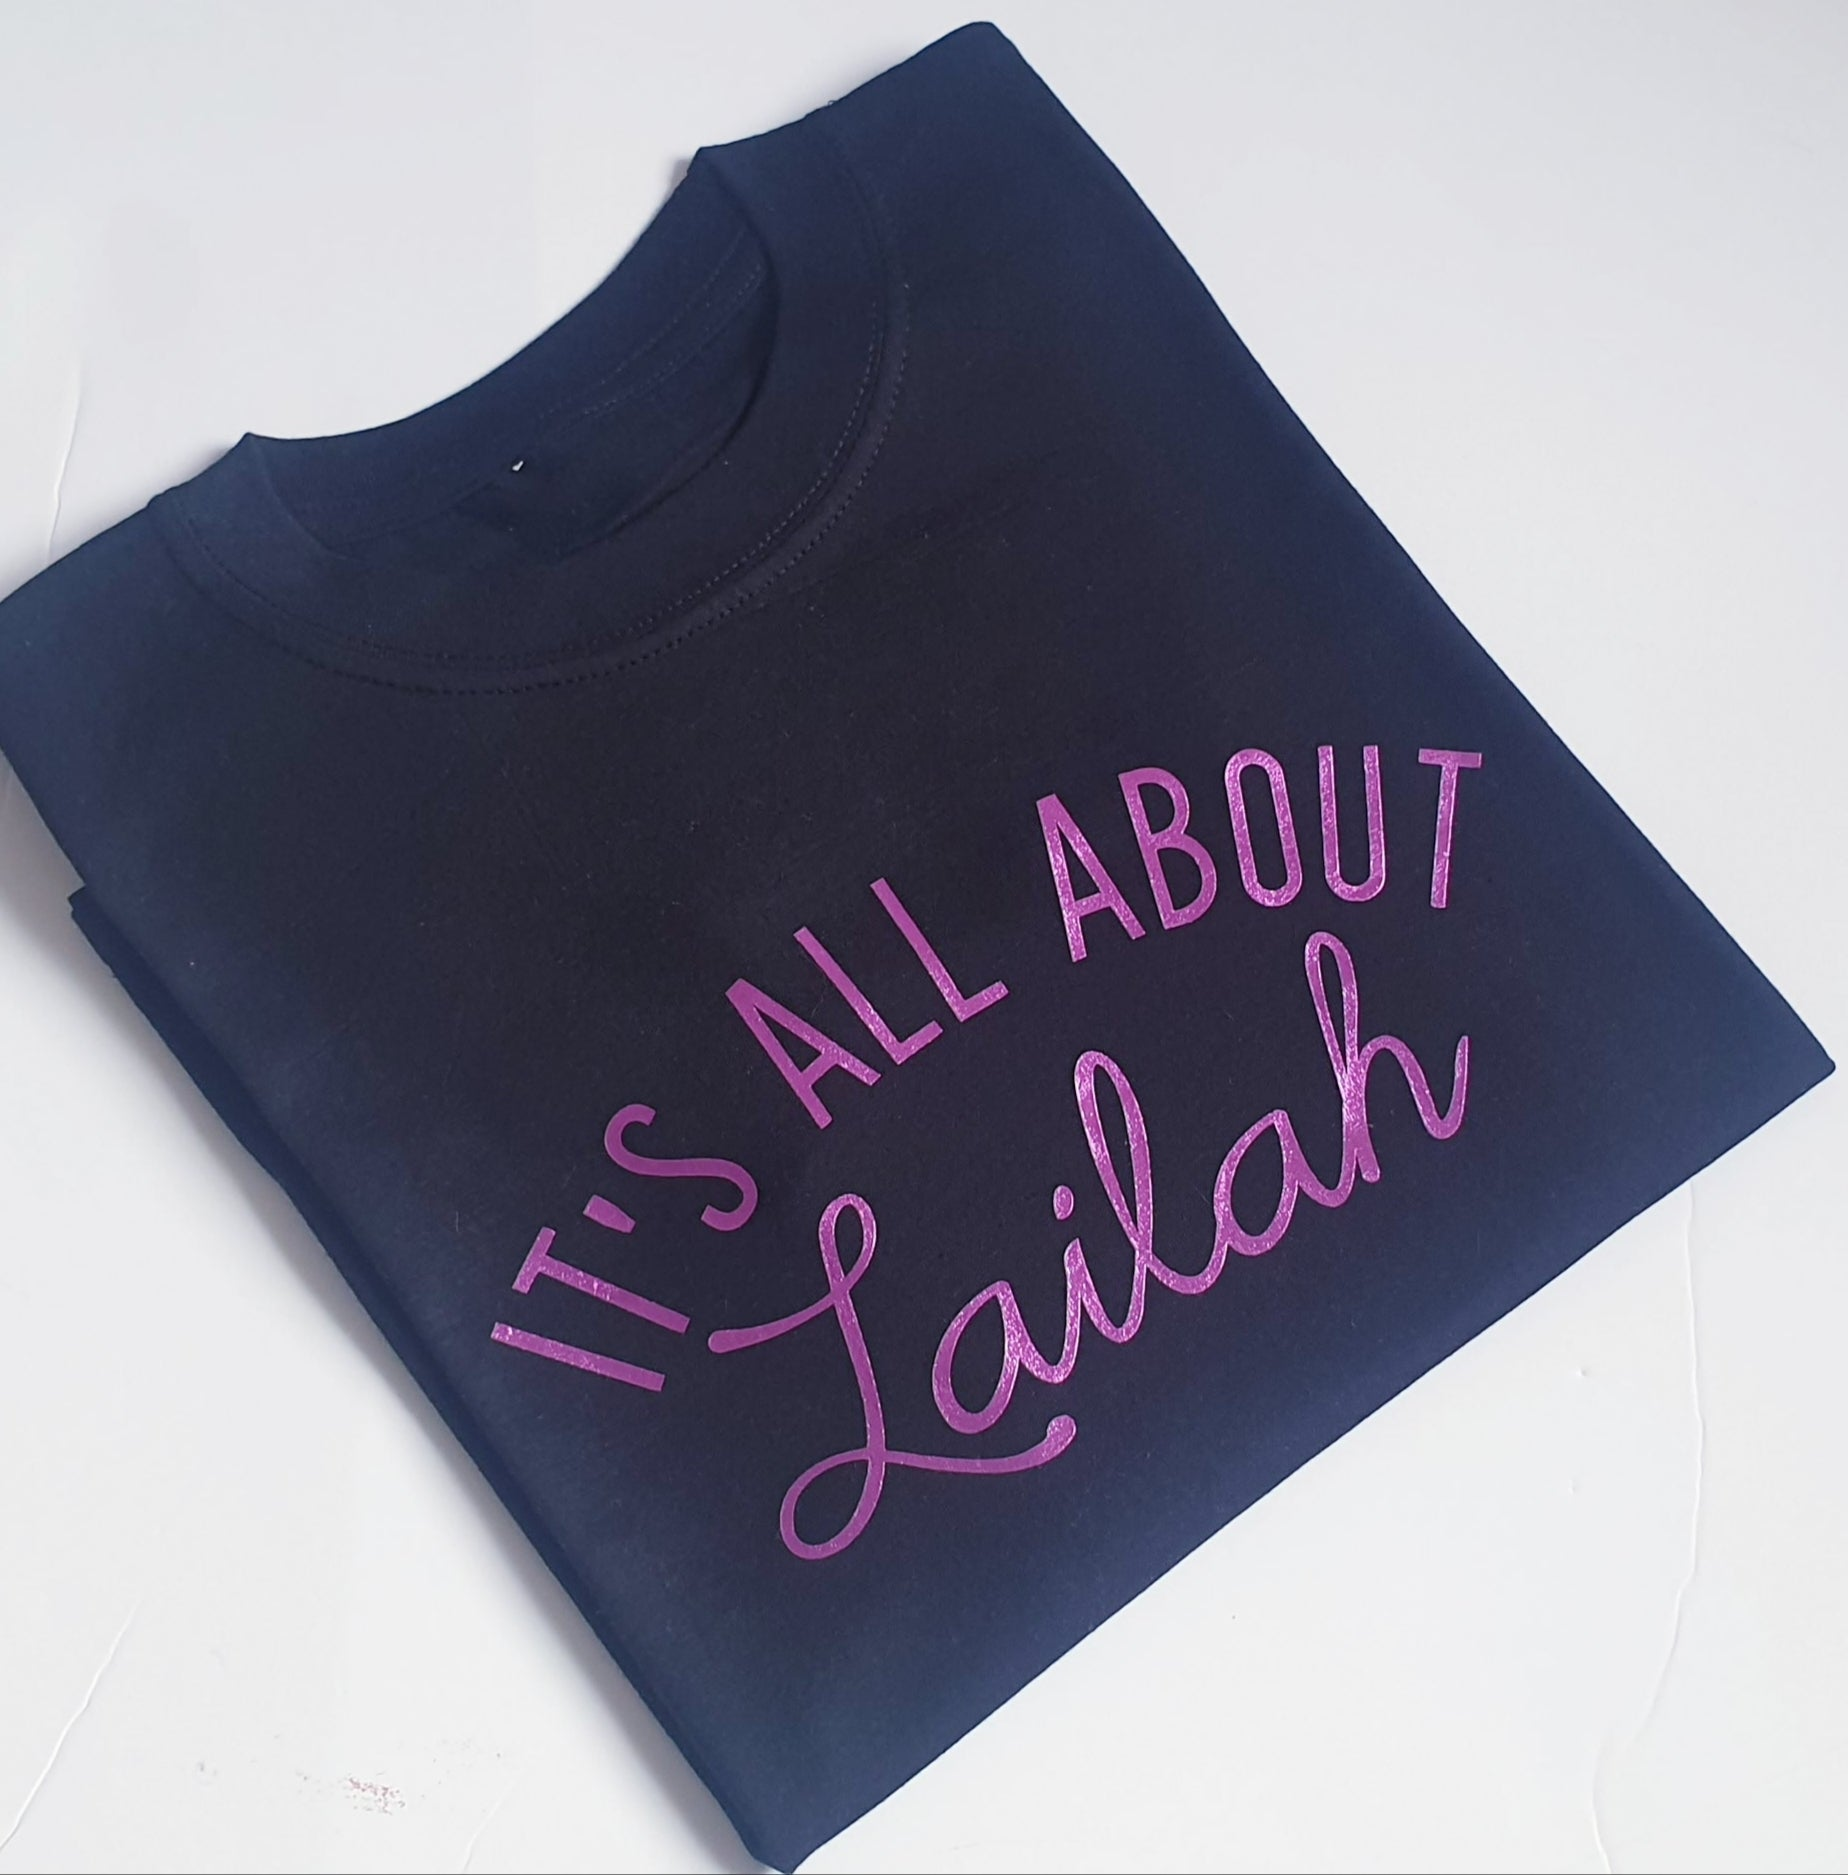 'Its all about' t-shirt